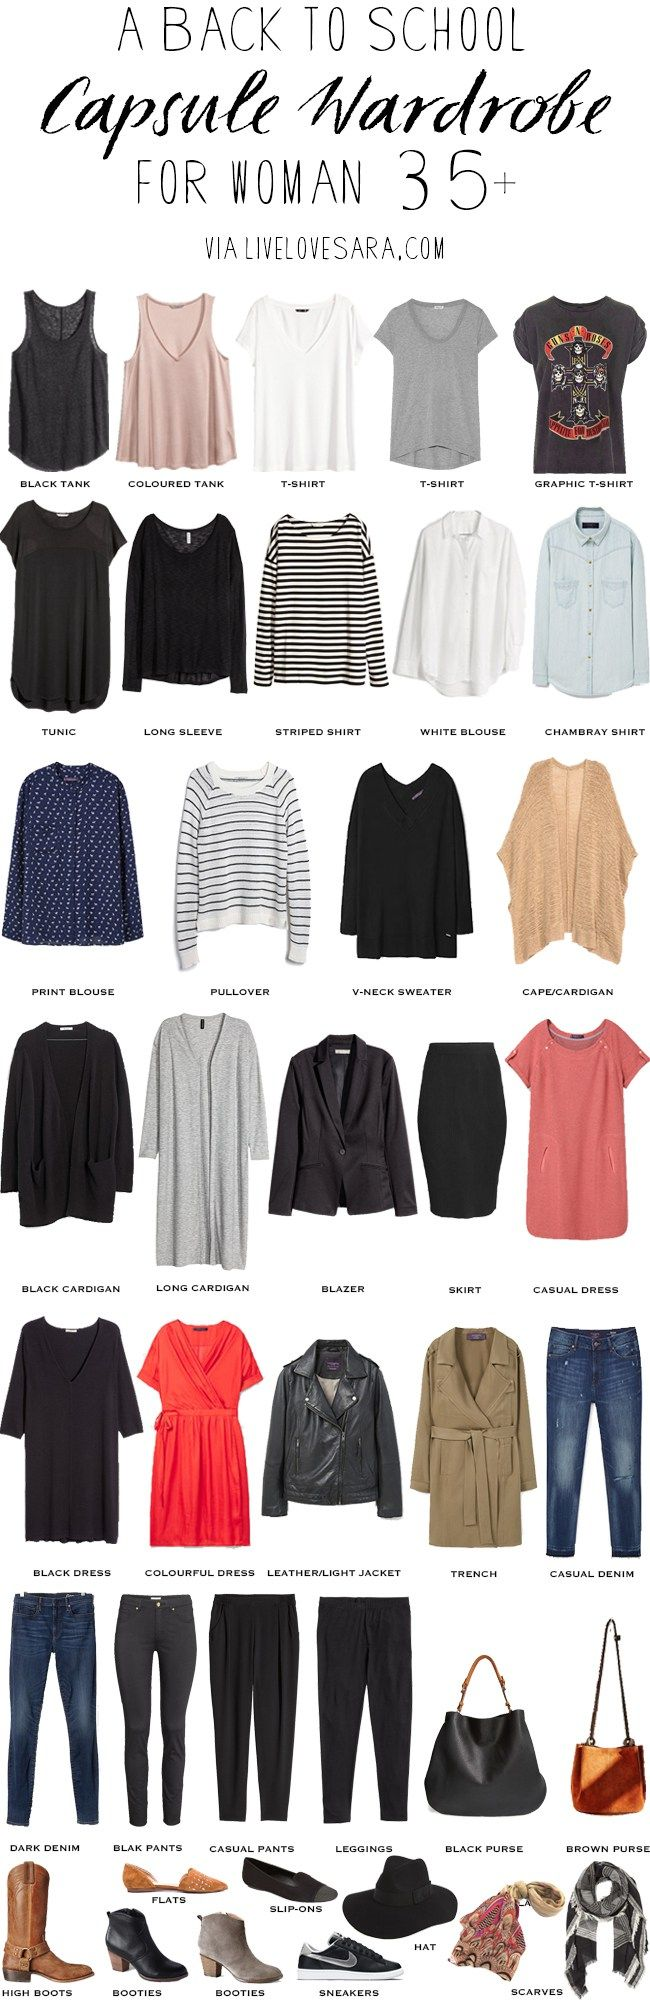 Discover ideas about Capsule Wardrobe ... - ro.pinterest.com